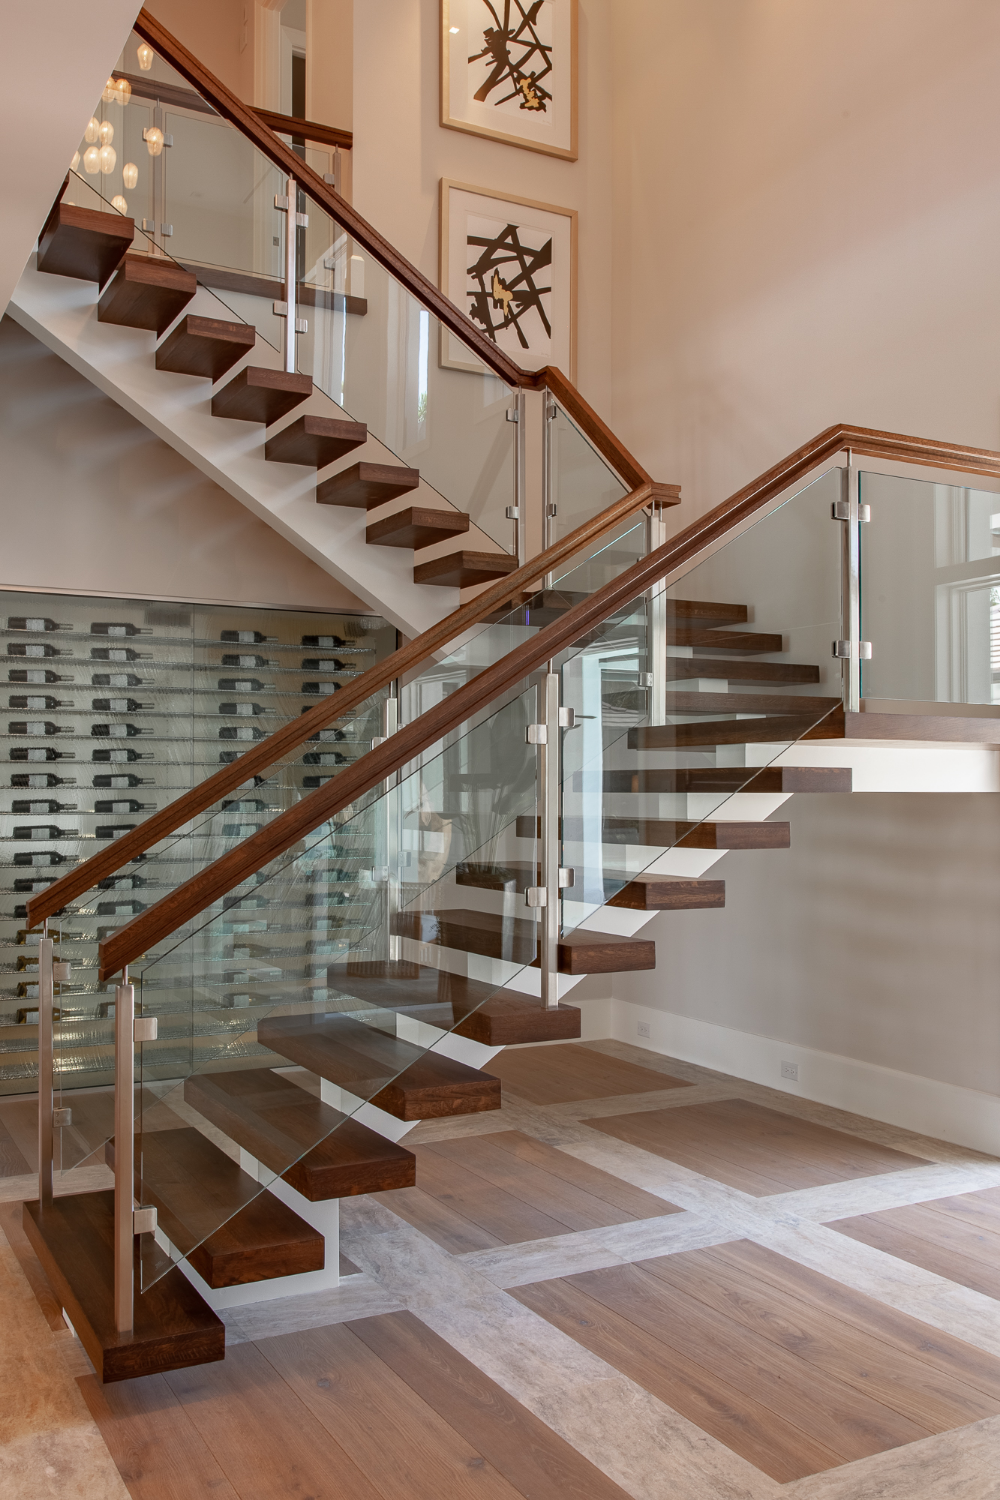 Staircase Stairs Design Modern Home Stairs Design Staircase Interior Design